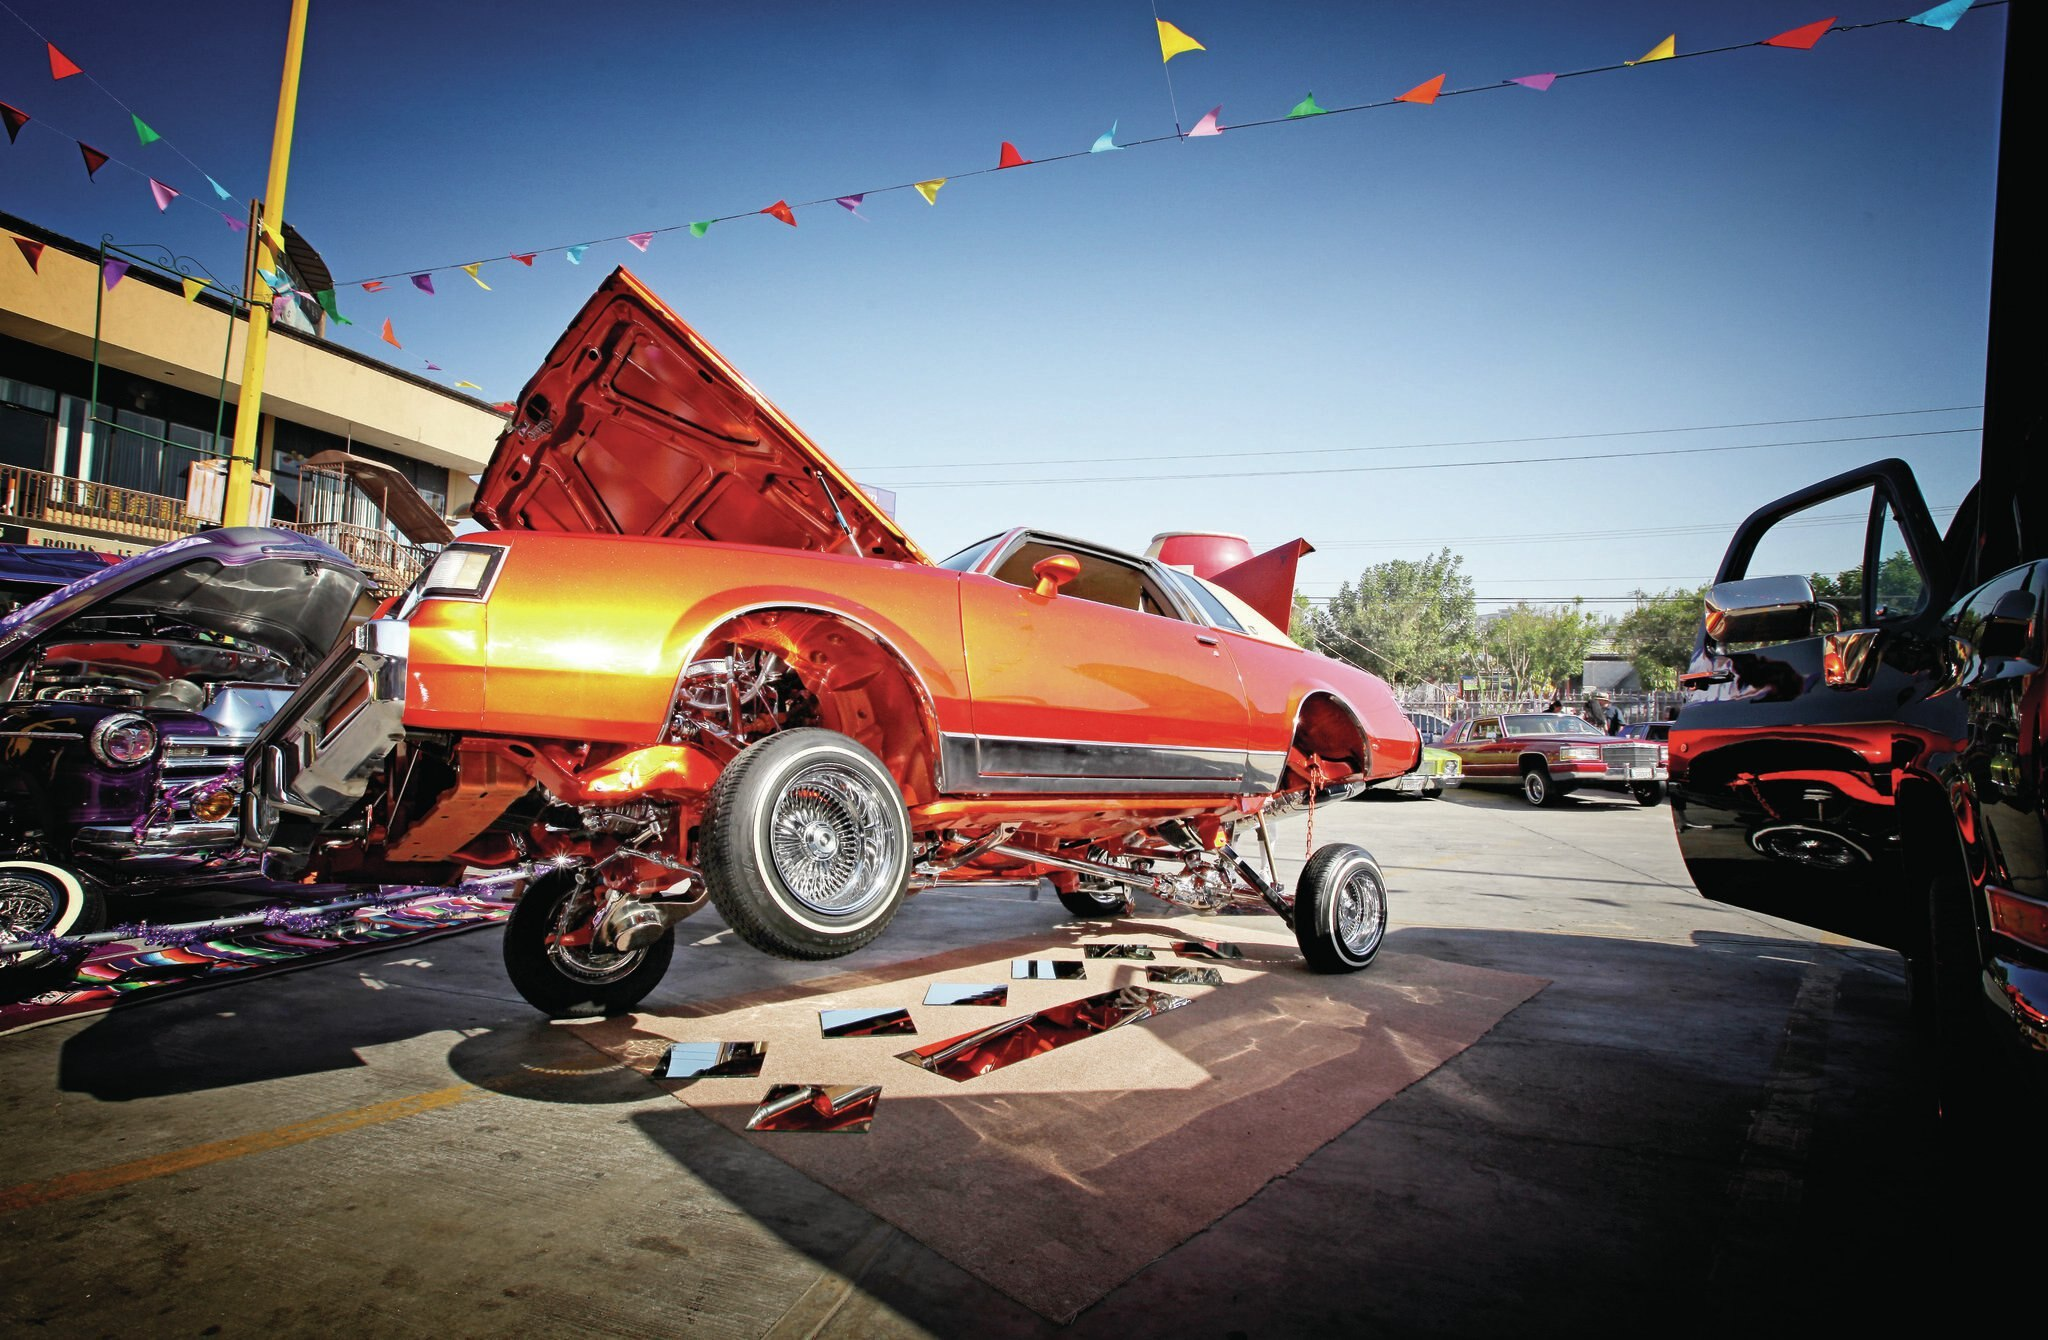 de-la-raza-show-lowrider-on-display1